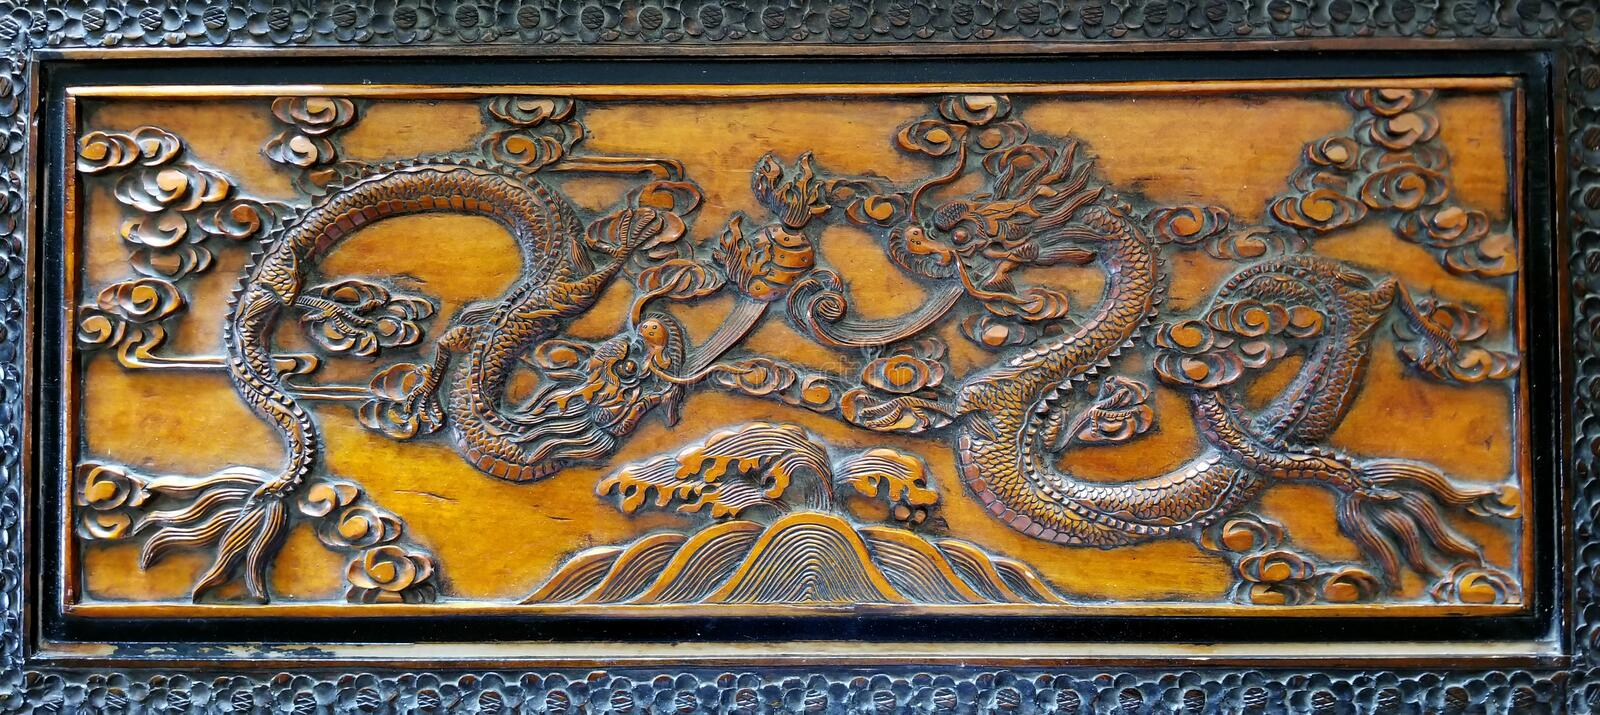 Two Dragons Dancing carved in camphor laurel wood. Two dragons carved in exquisite detail on lid of an antique hope chest made of camphor laurel wood orginially stock photo